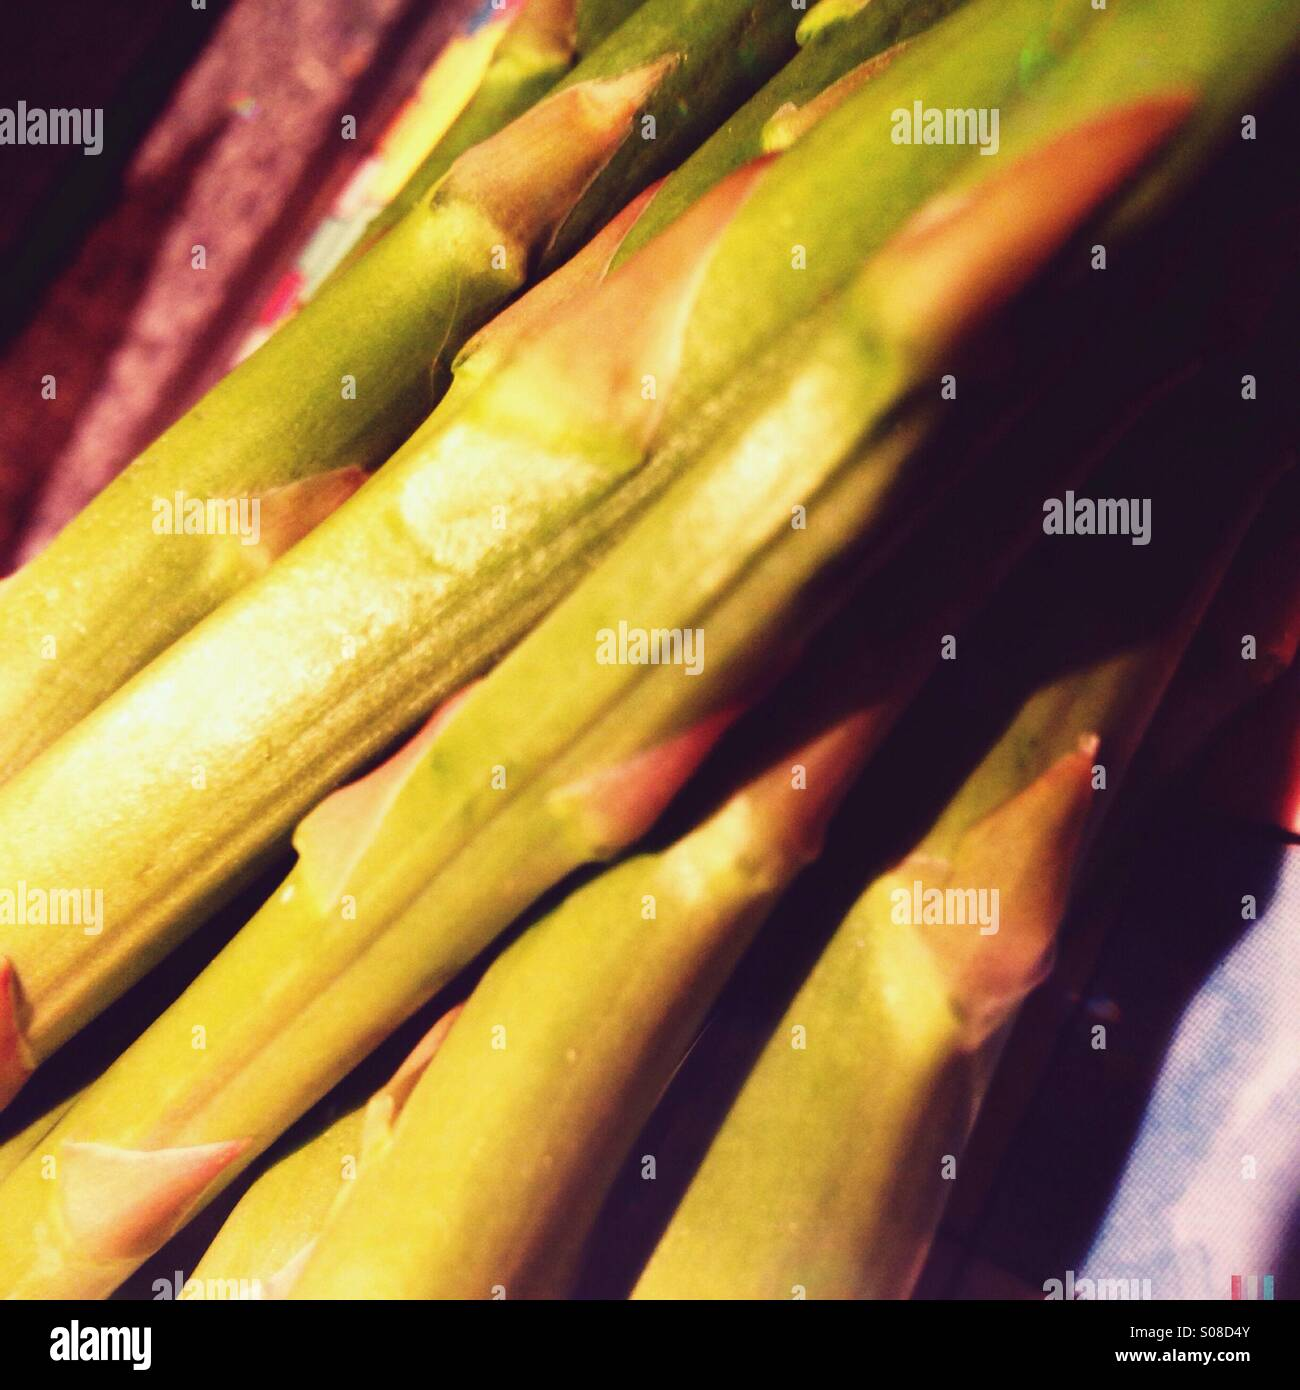 Close up of asparagus stems - Stock Image